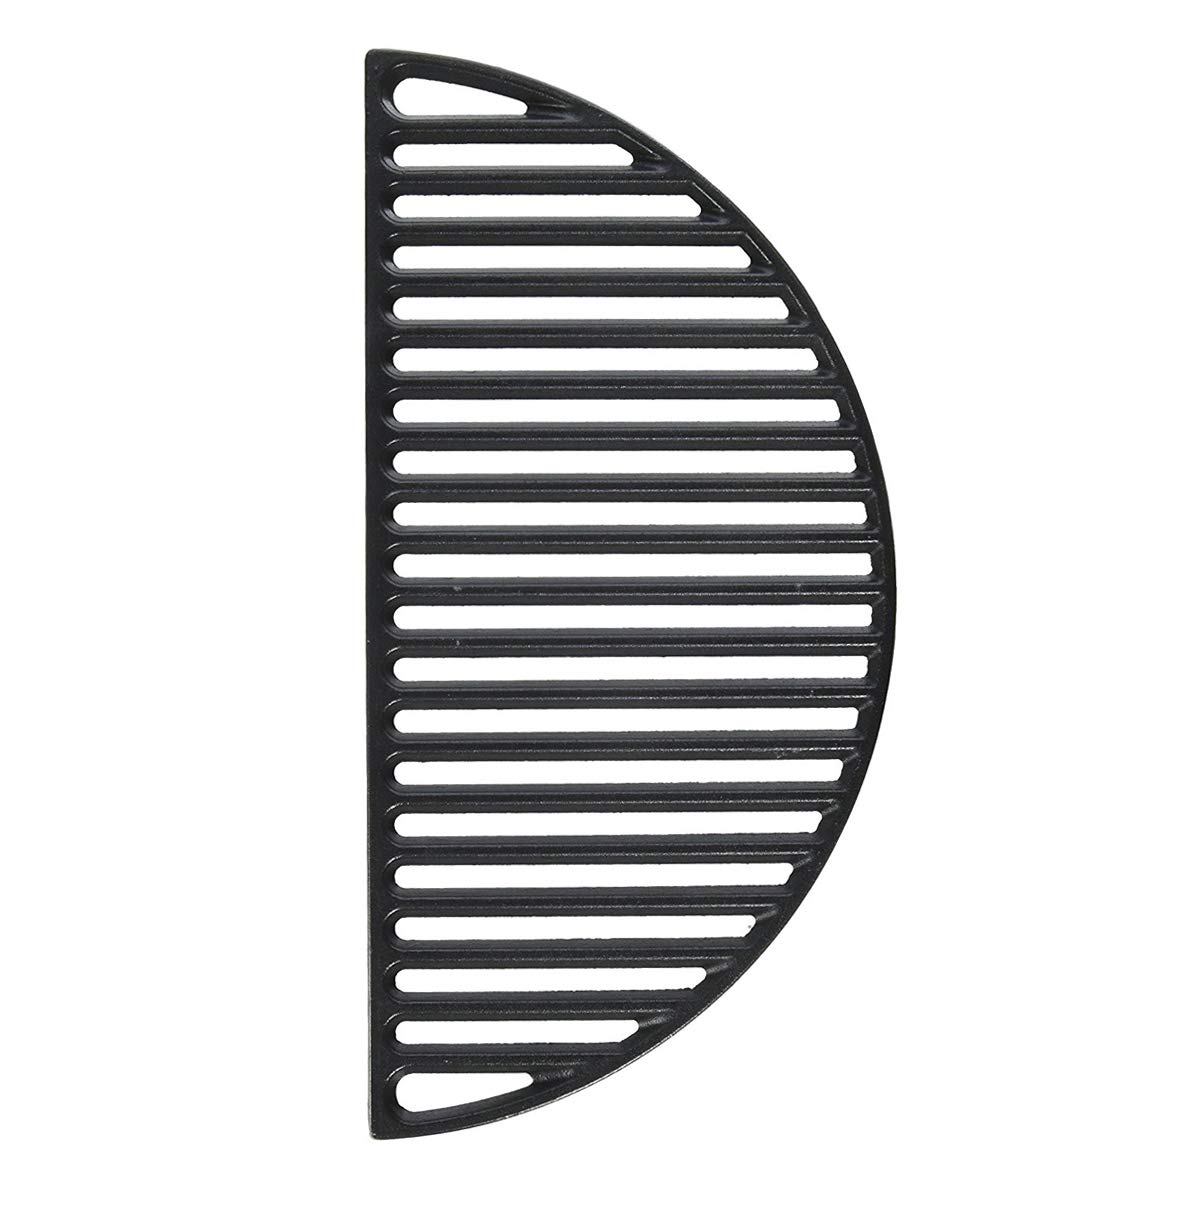 """22"""" Half Moon Cast Iron Divide & Conquer Cooking Grate fit for Classic Joe Reversible Grate for XLarge Big Green Egg or any 22 Inch Kamado Grill Barbeque Accessories for Searing"""